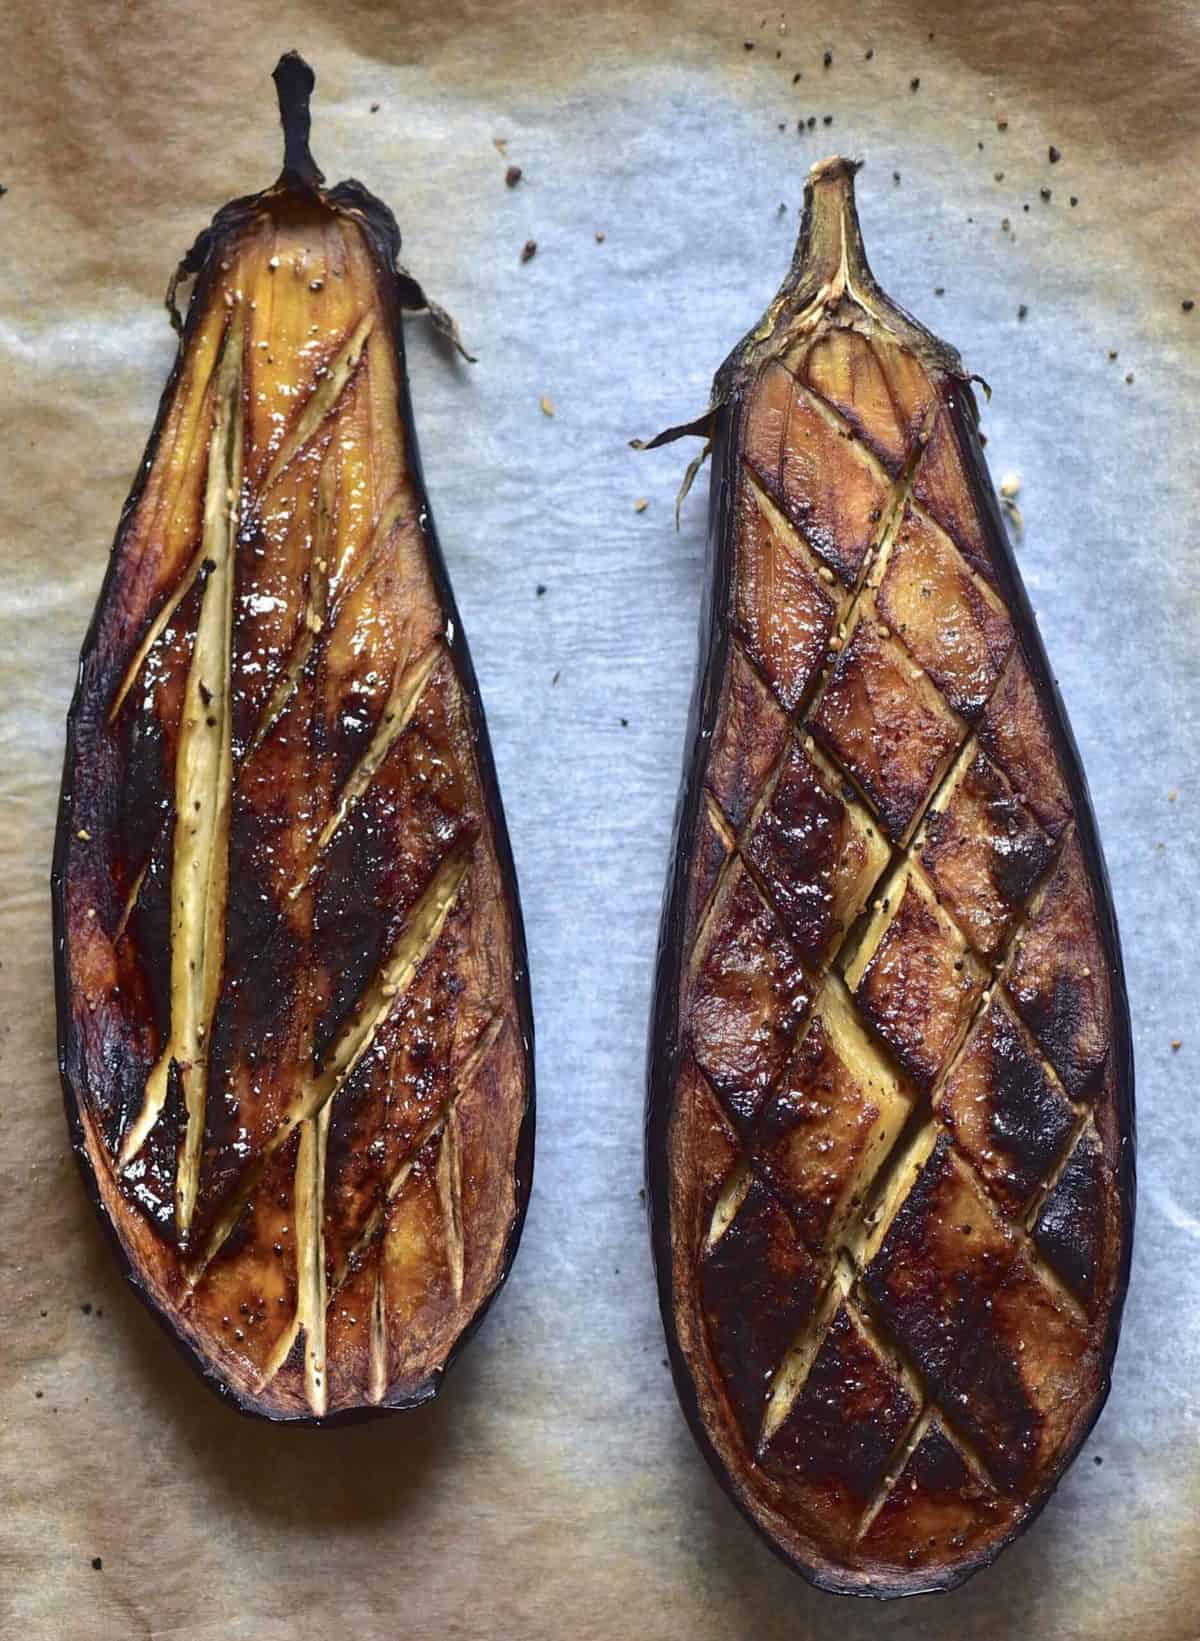 Two baked halves of an eggplant